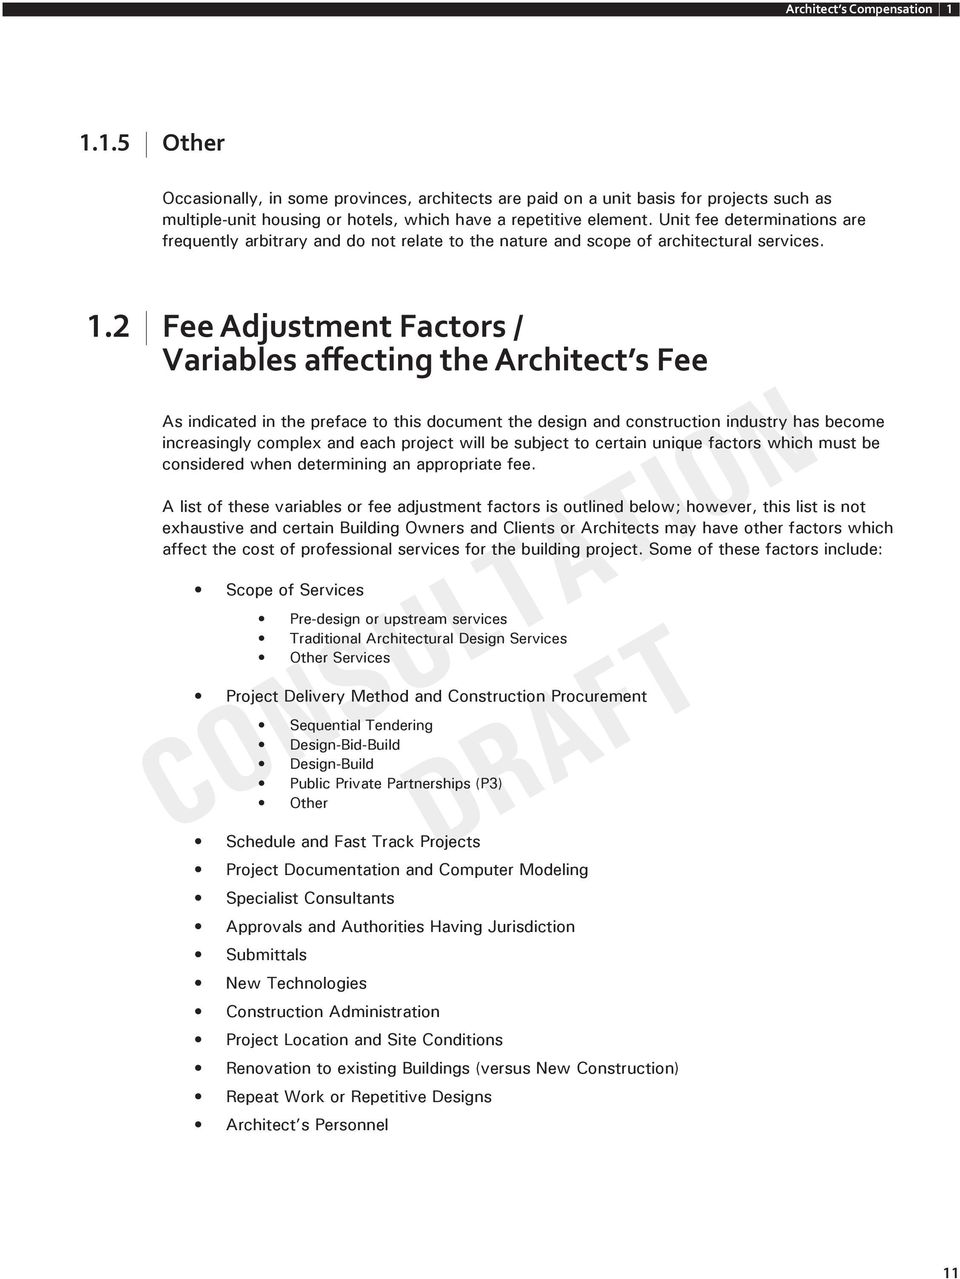 A Guide To Determining Appropriate Fees For The Services Of An